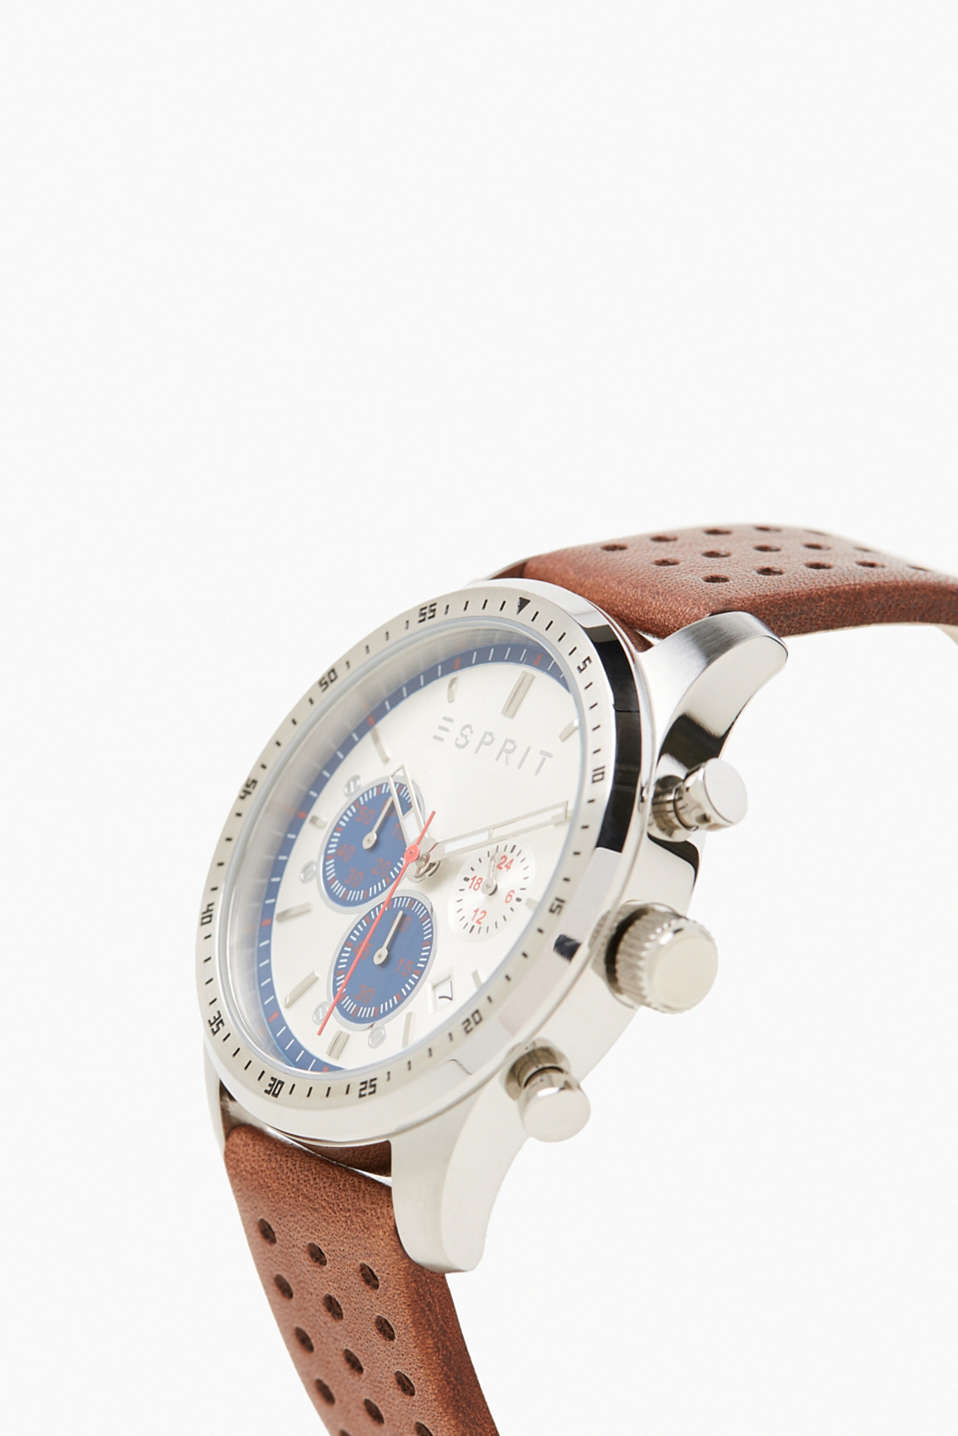 Chrono with a perforated leather wrist strap